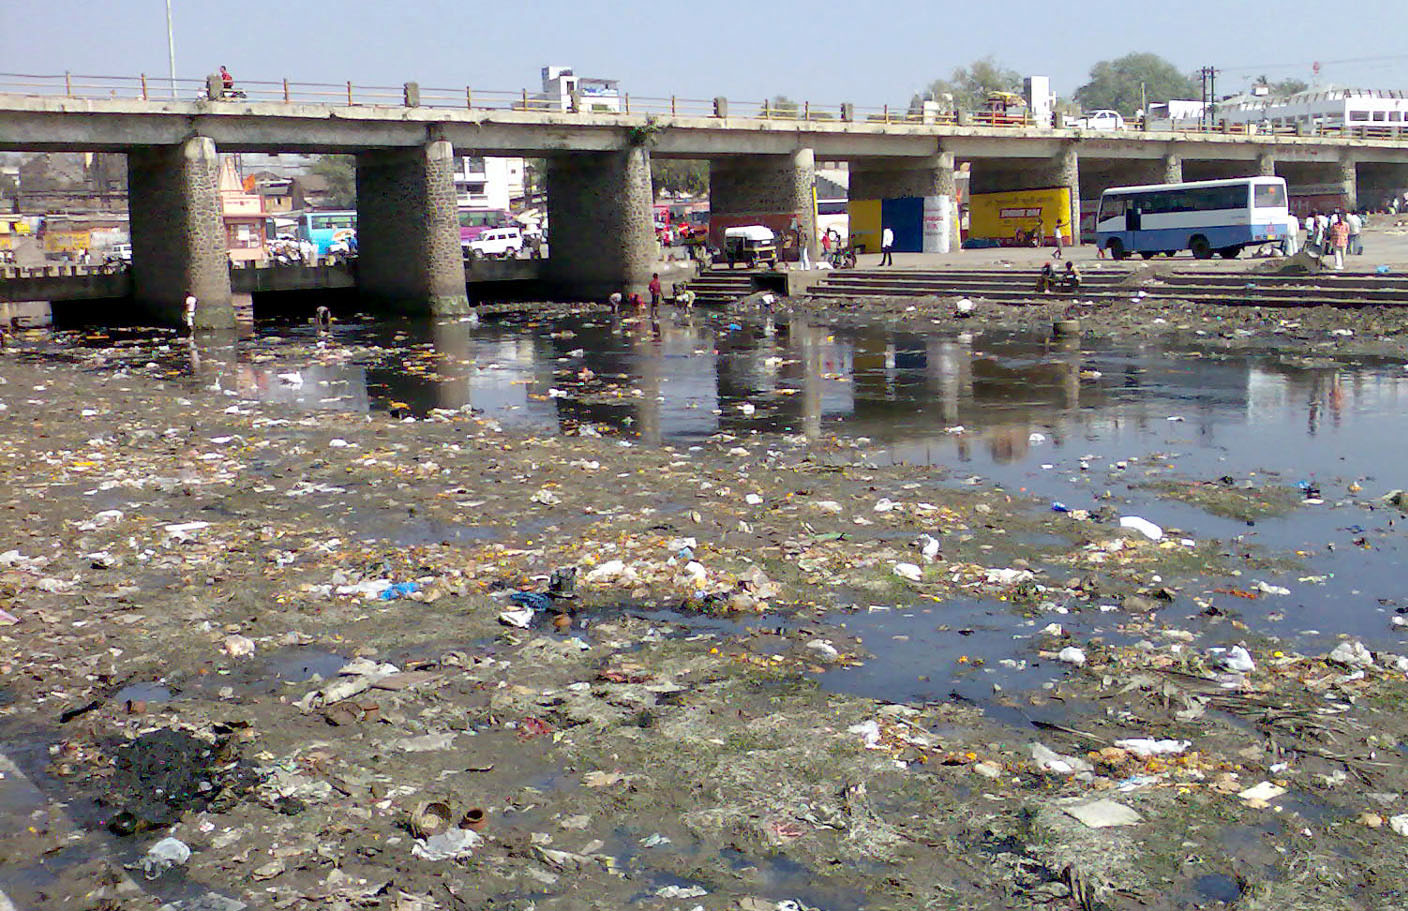 essay on river ganga Pollution, solution and ganga revolution over 500 million citizens depend on the river ganga for life itself  from ganga: the river.